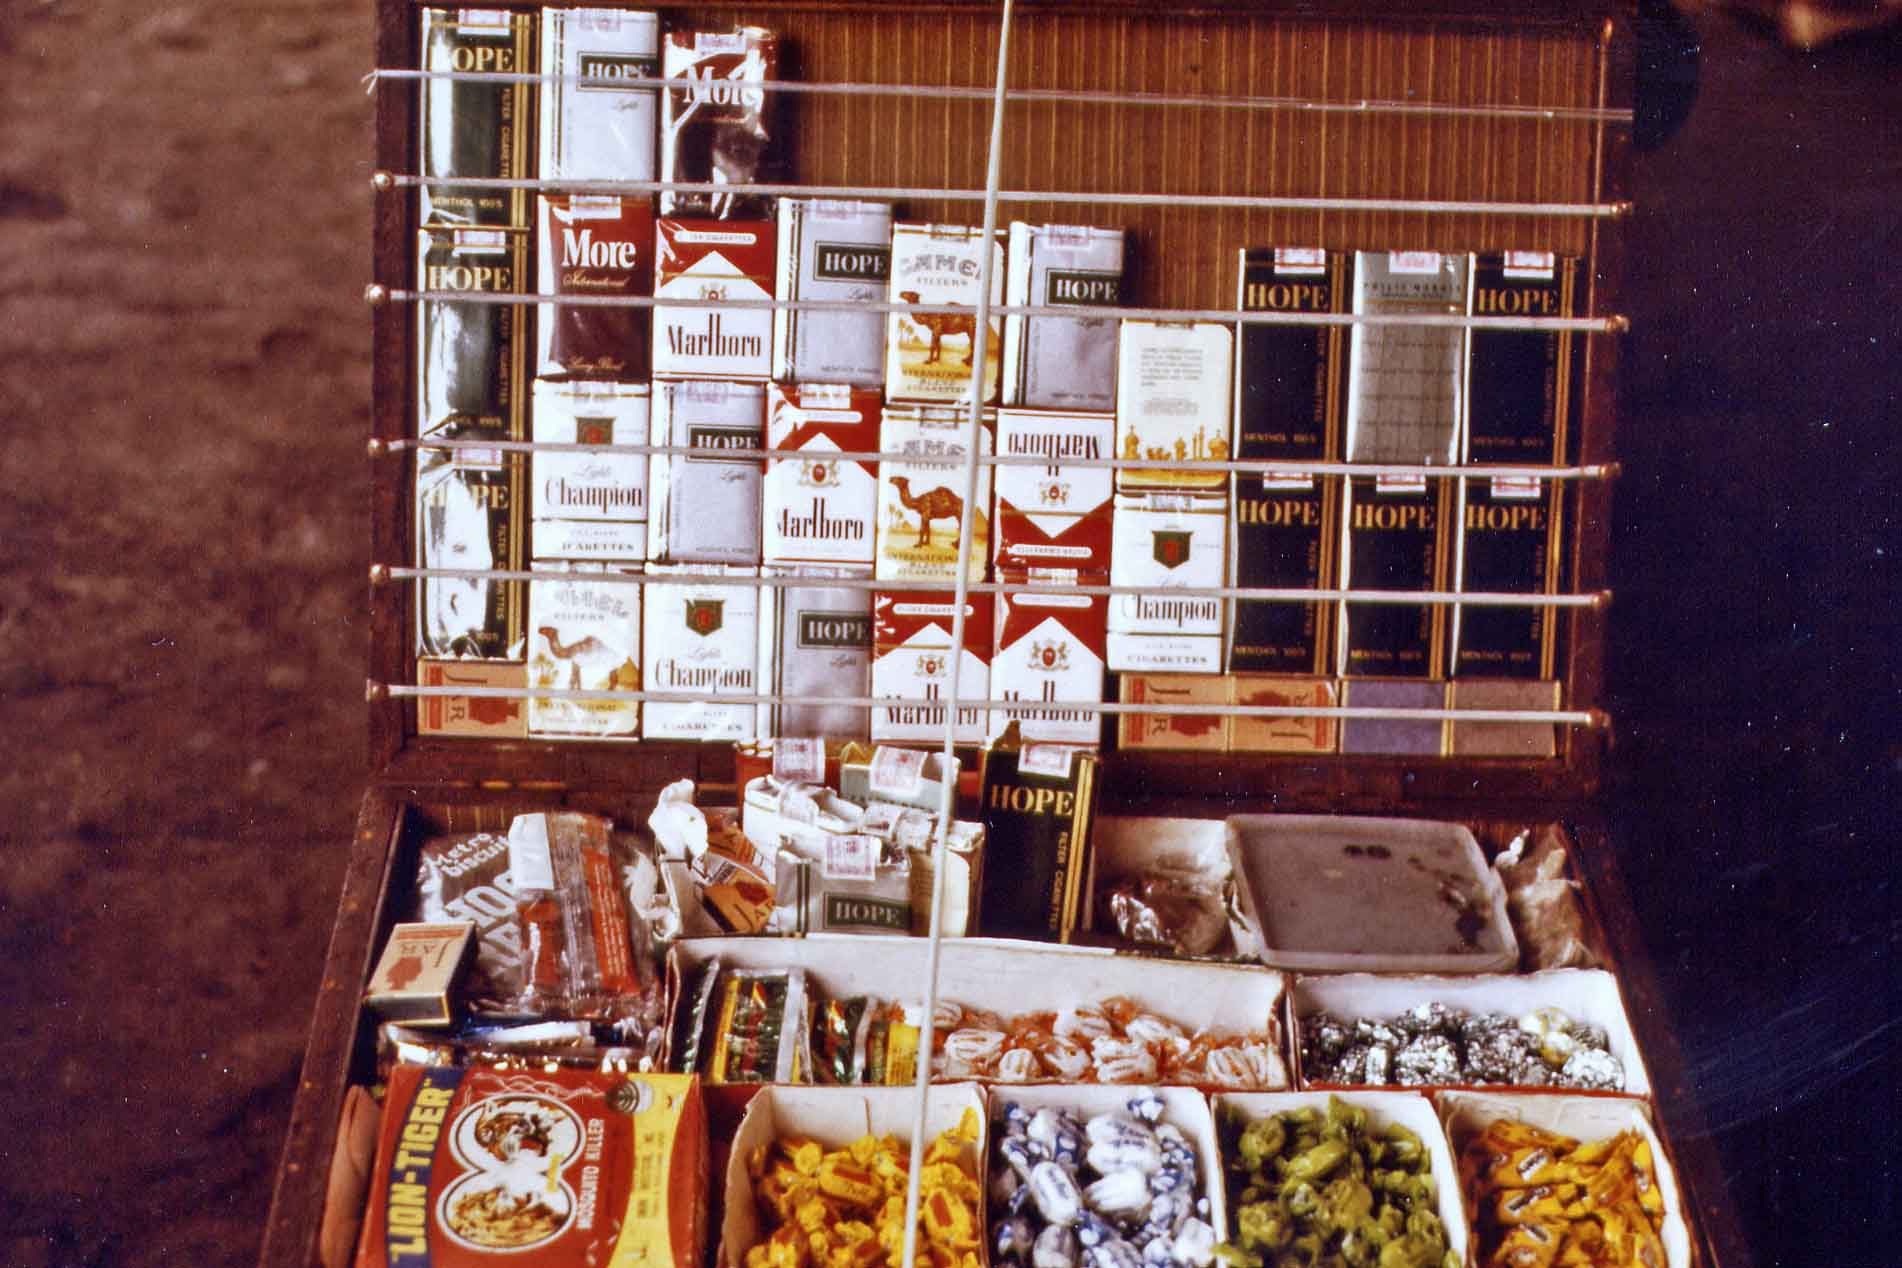 Kiosk with Cigarettes in Manila